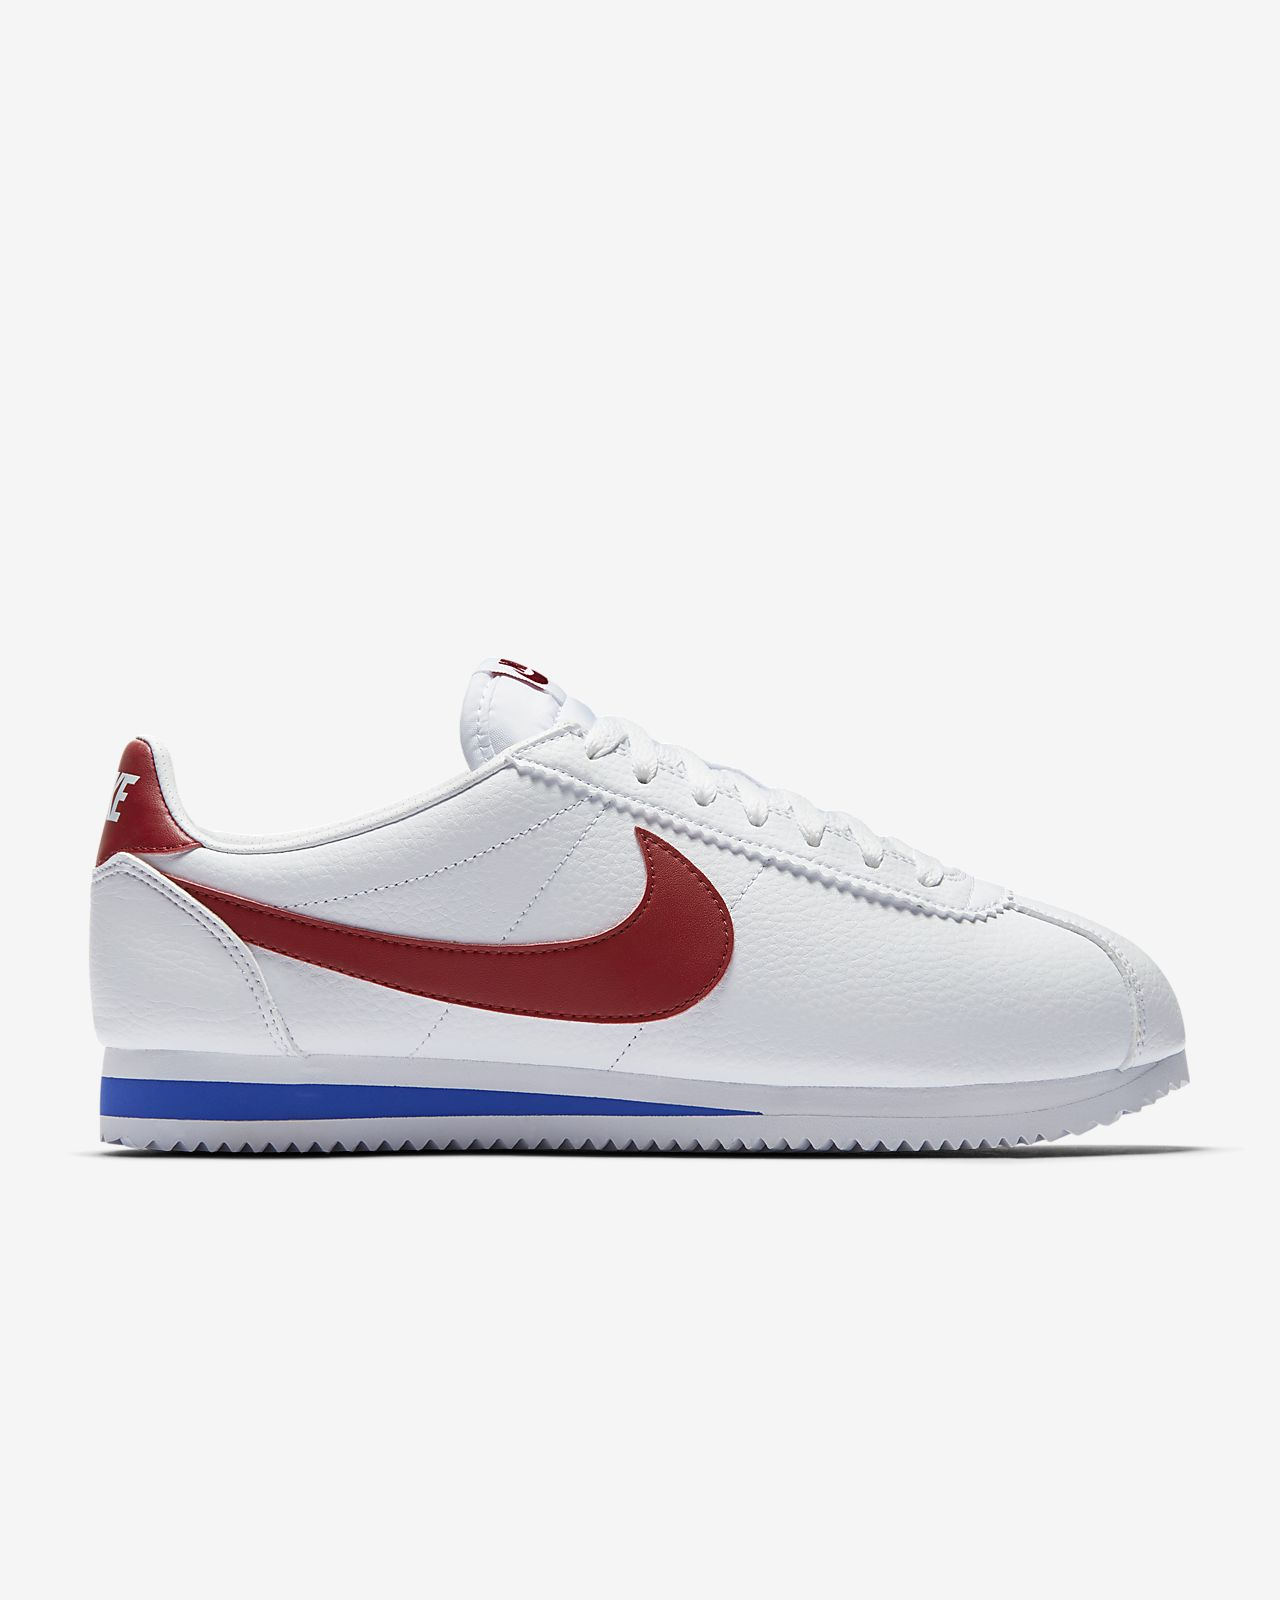 buy popular a27af 46207 ... Chaussure Nike Classic Cortez pour Homme